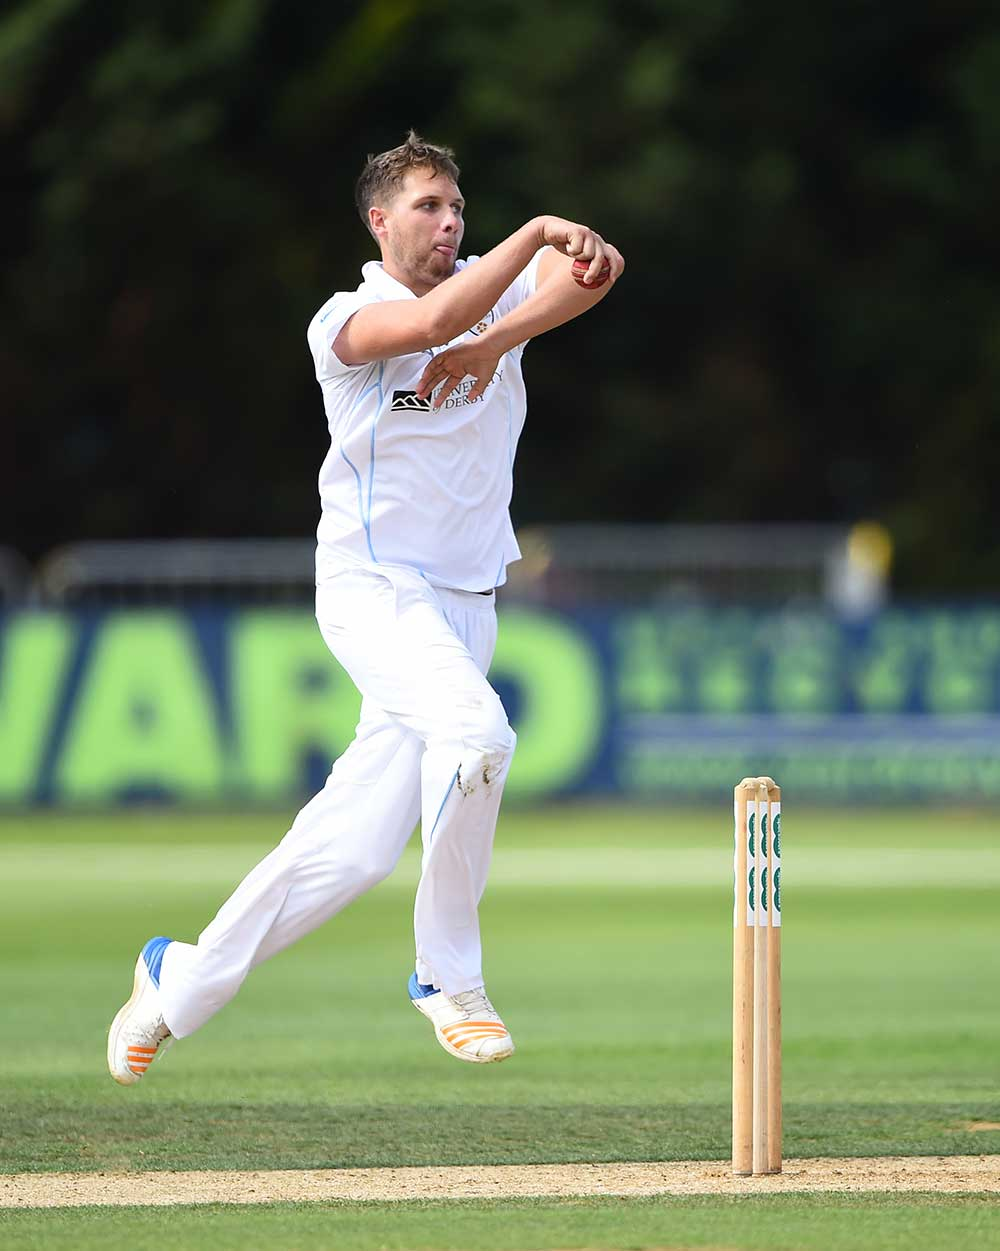 Derbyshire leg-spinner Matt Critchley // Getty